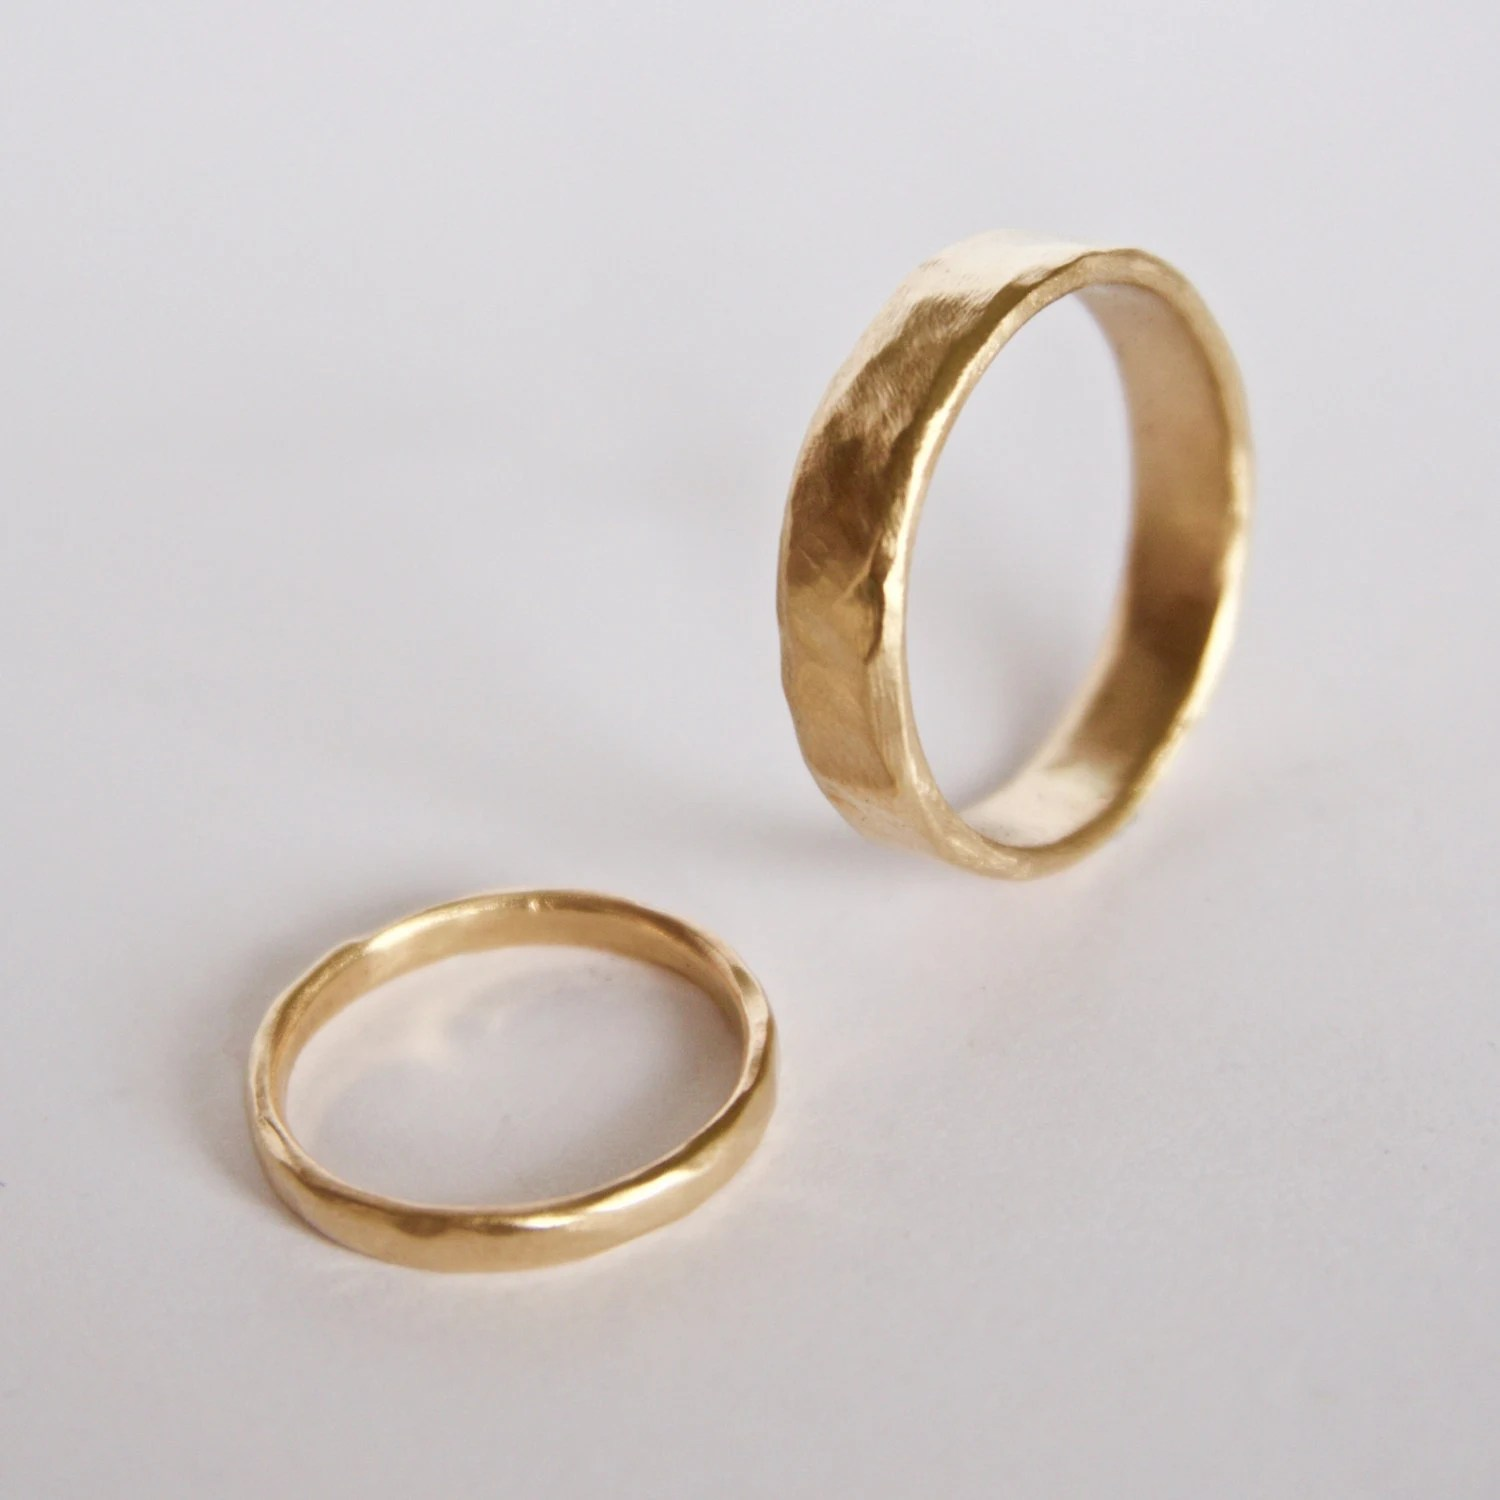 Two Organic Shape Gold Rings Wedding Ring Set Two Textured